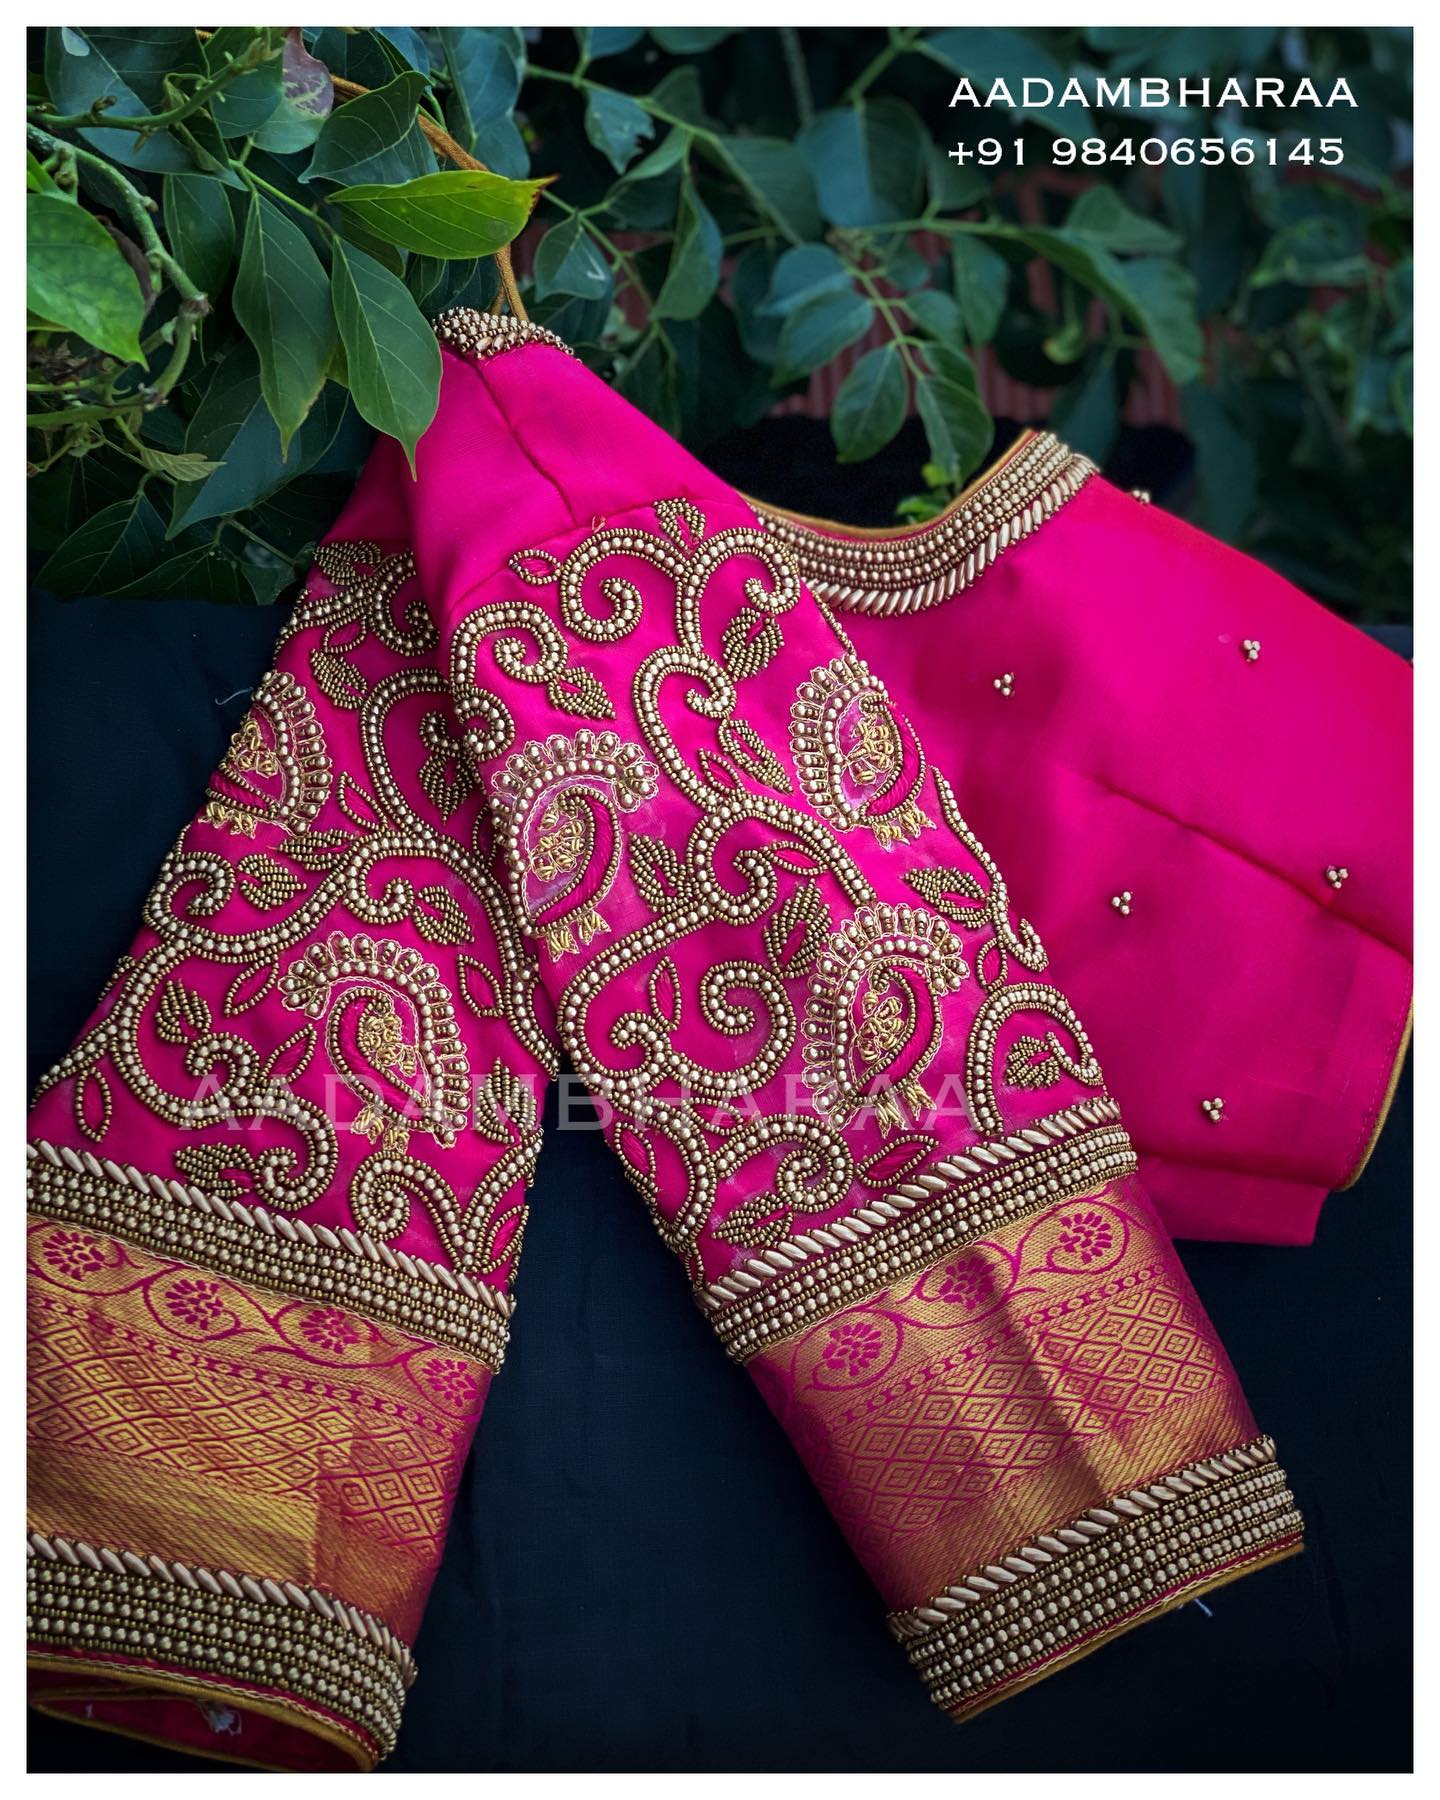 Showcase your style with an essence of tradition donning this versatile Pink blouse from Aadambharaa whose sleeve is decked with ethnic thread embroidery and bead work. 2021-06-06